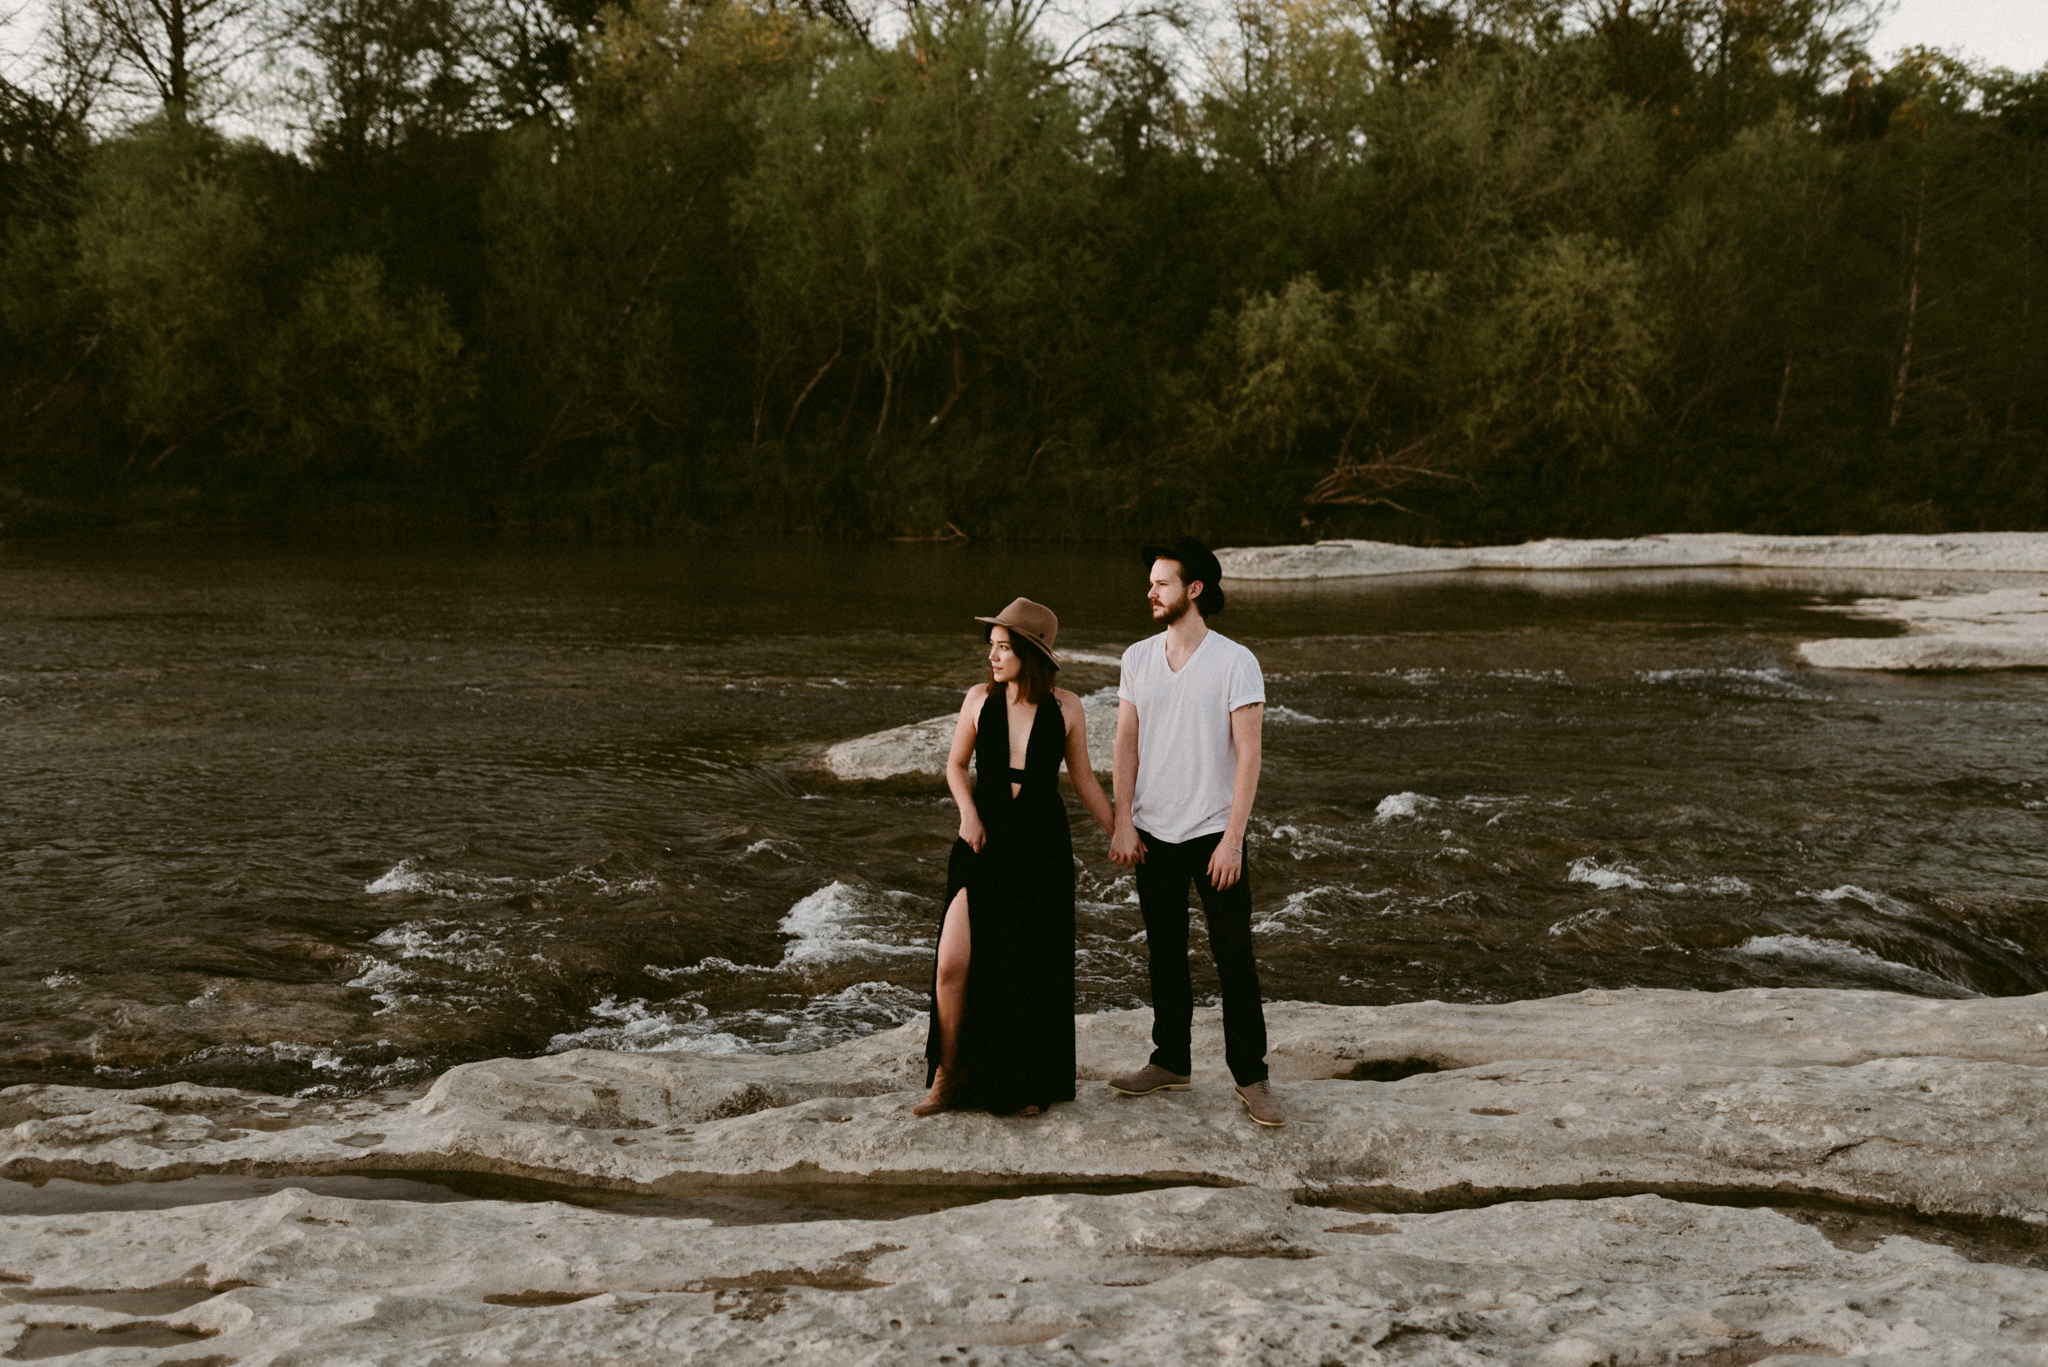 intimate-mckinney-falls-state-park-engagement-session-austin-wedding-photographer-corpus-christi-wedding-photographer